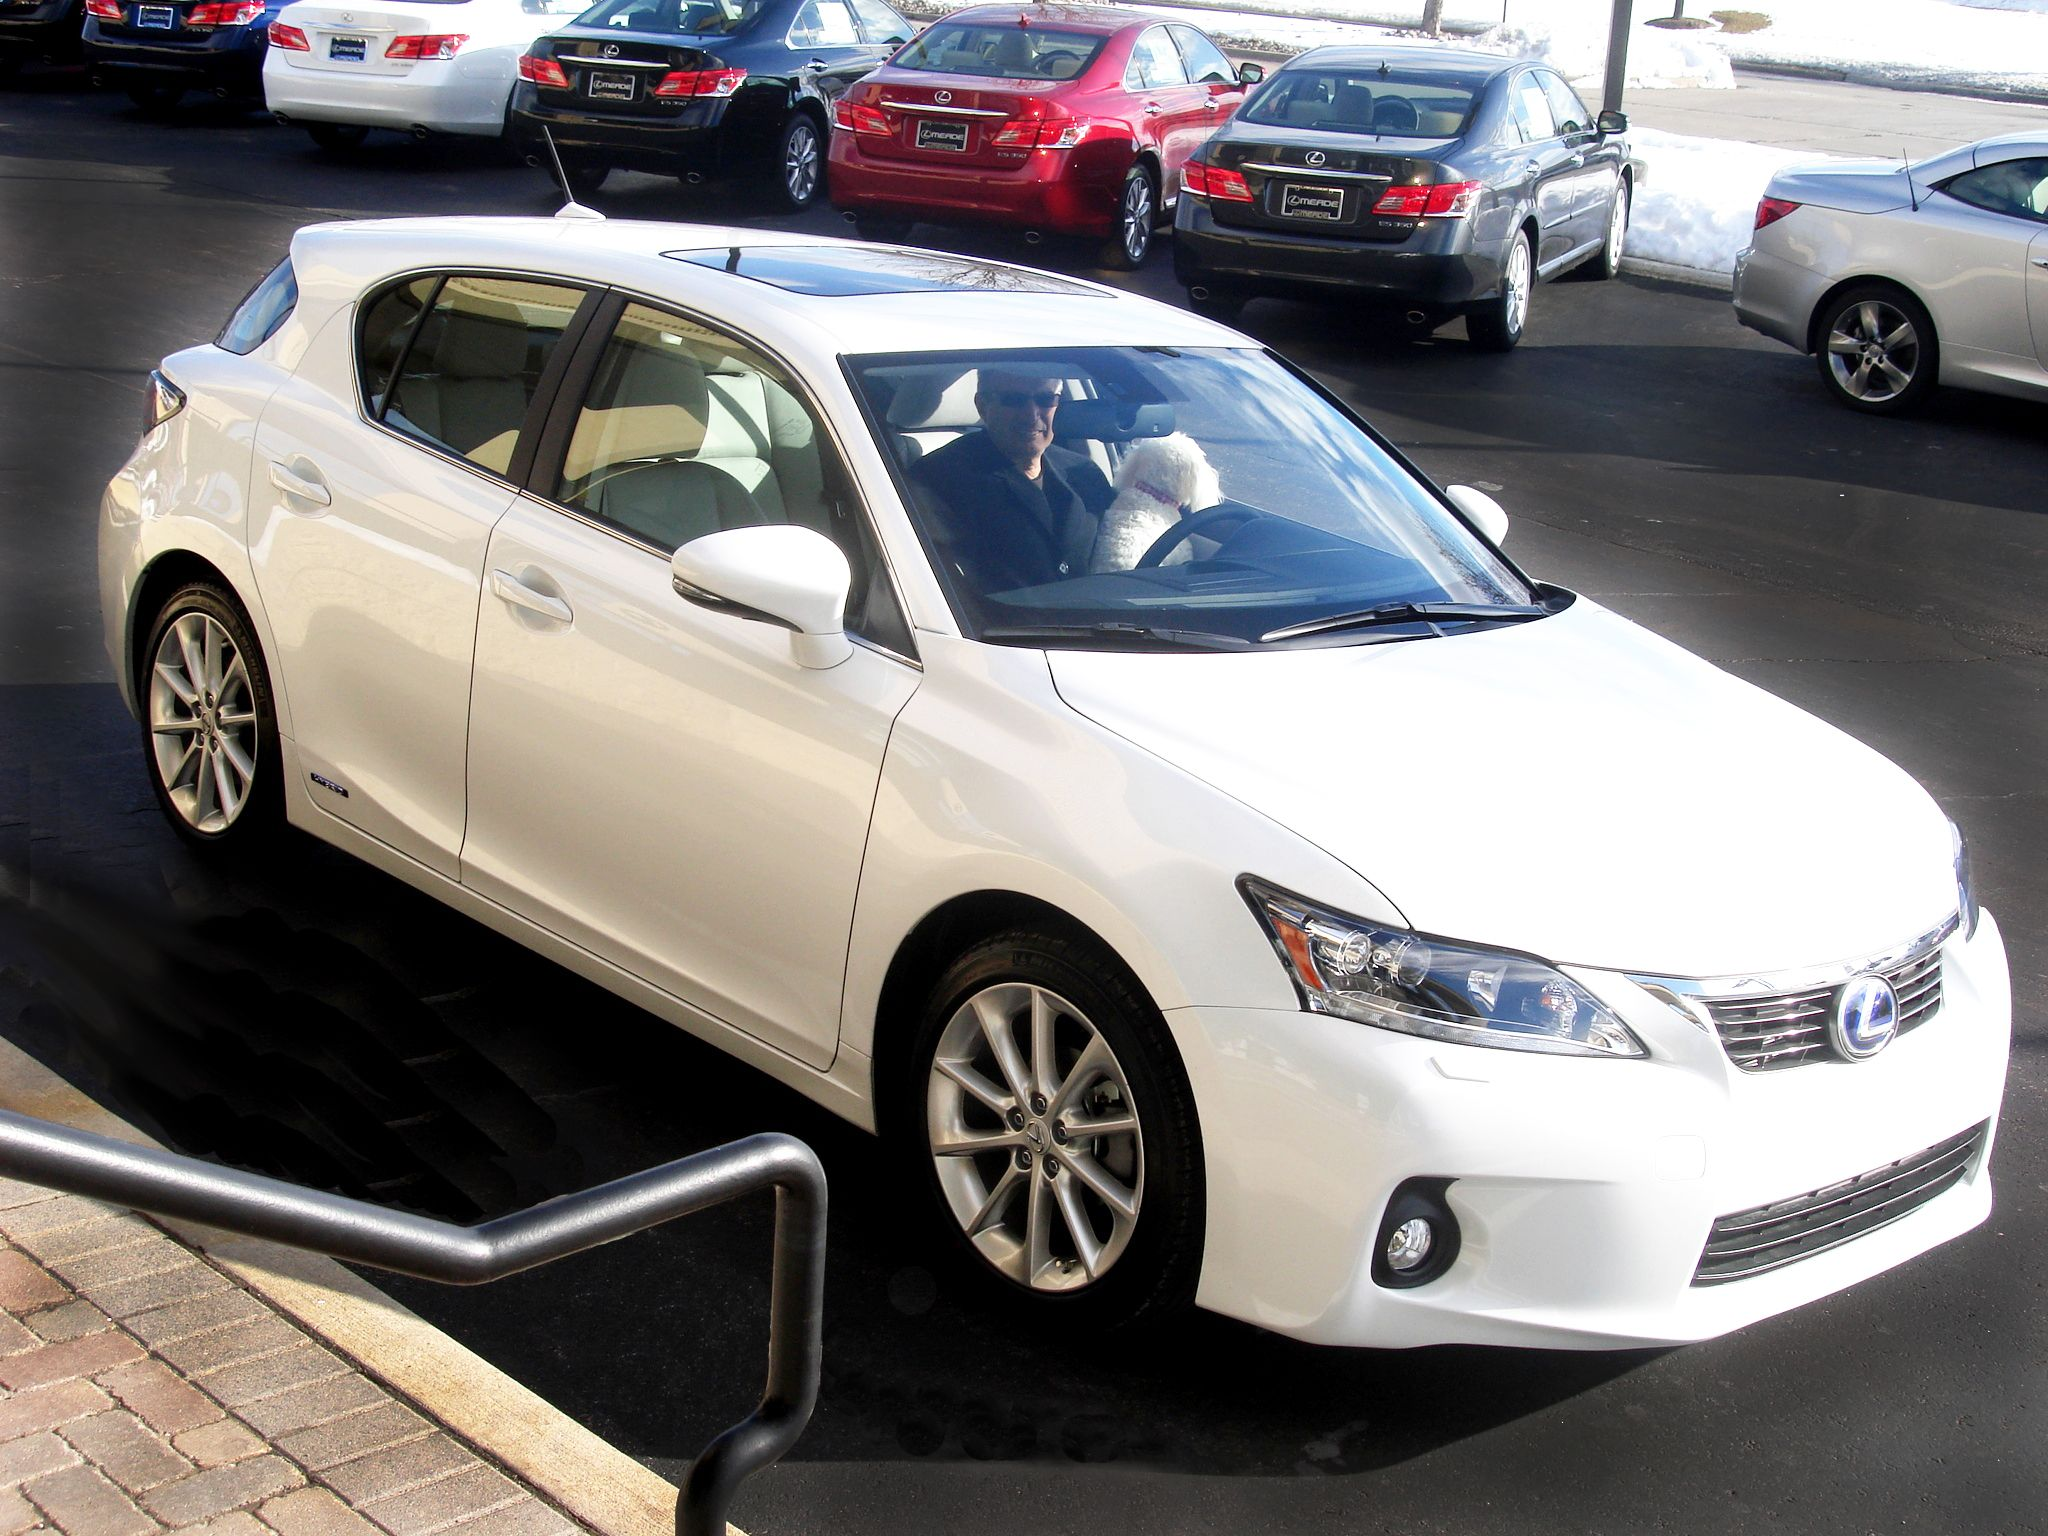 b155f1f483d43189bf2622fe07e137b2 Great Description About 2012 Lexus Es with Fascinating Images Cars Review